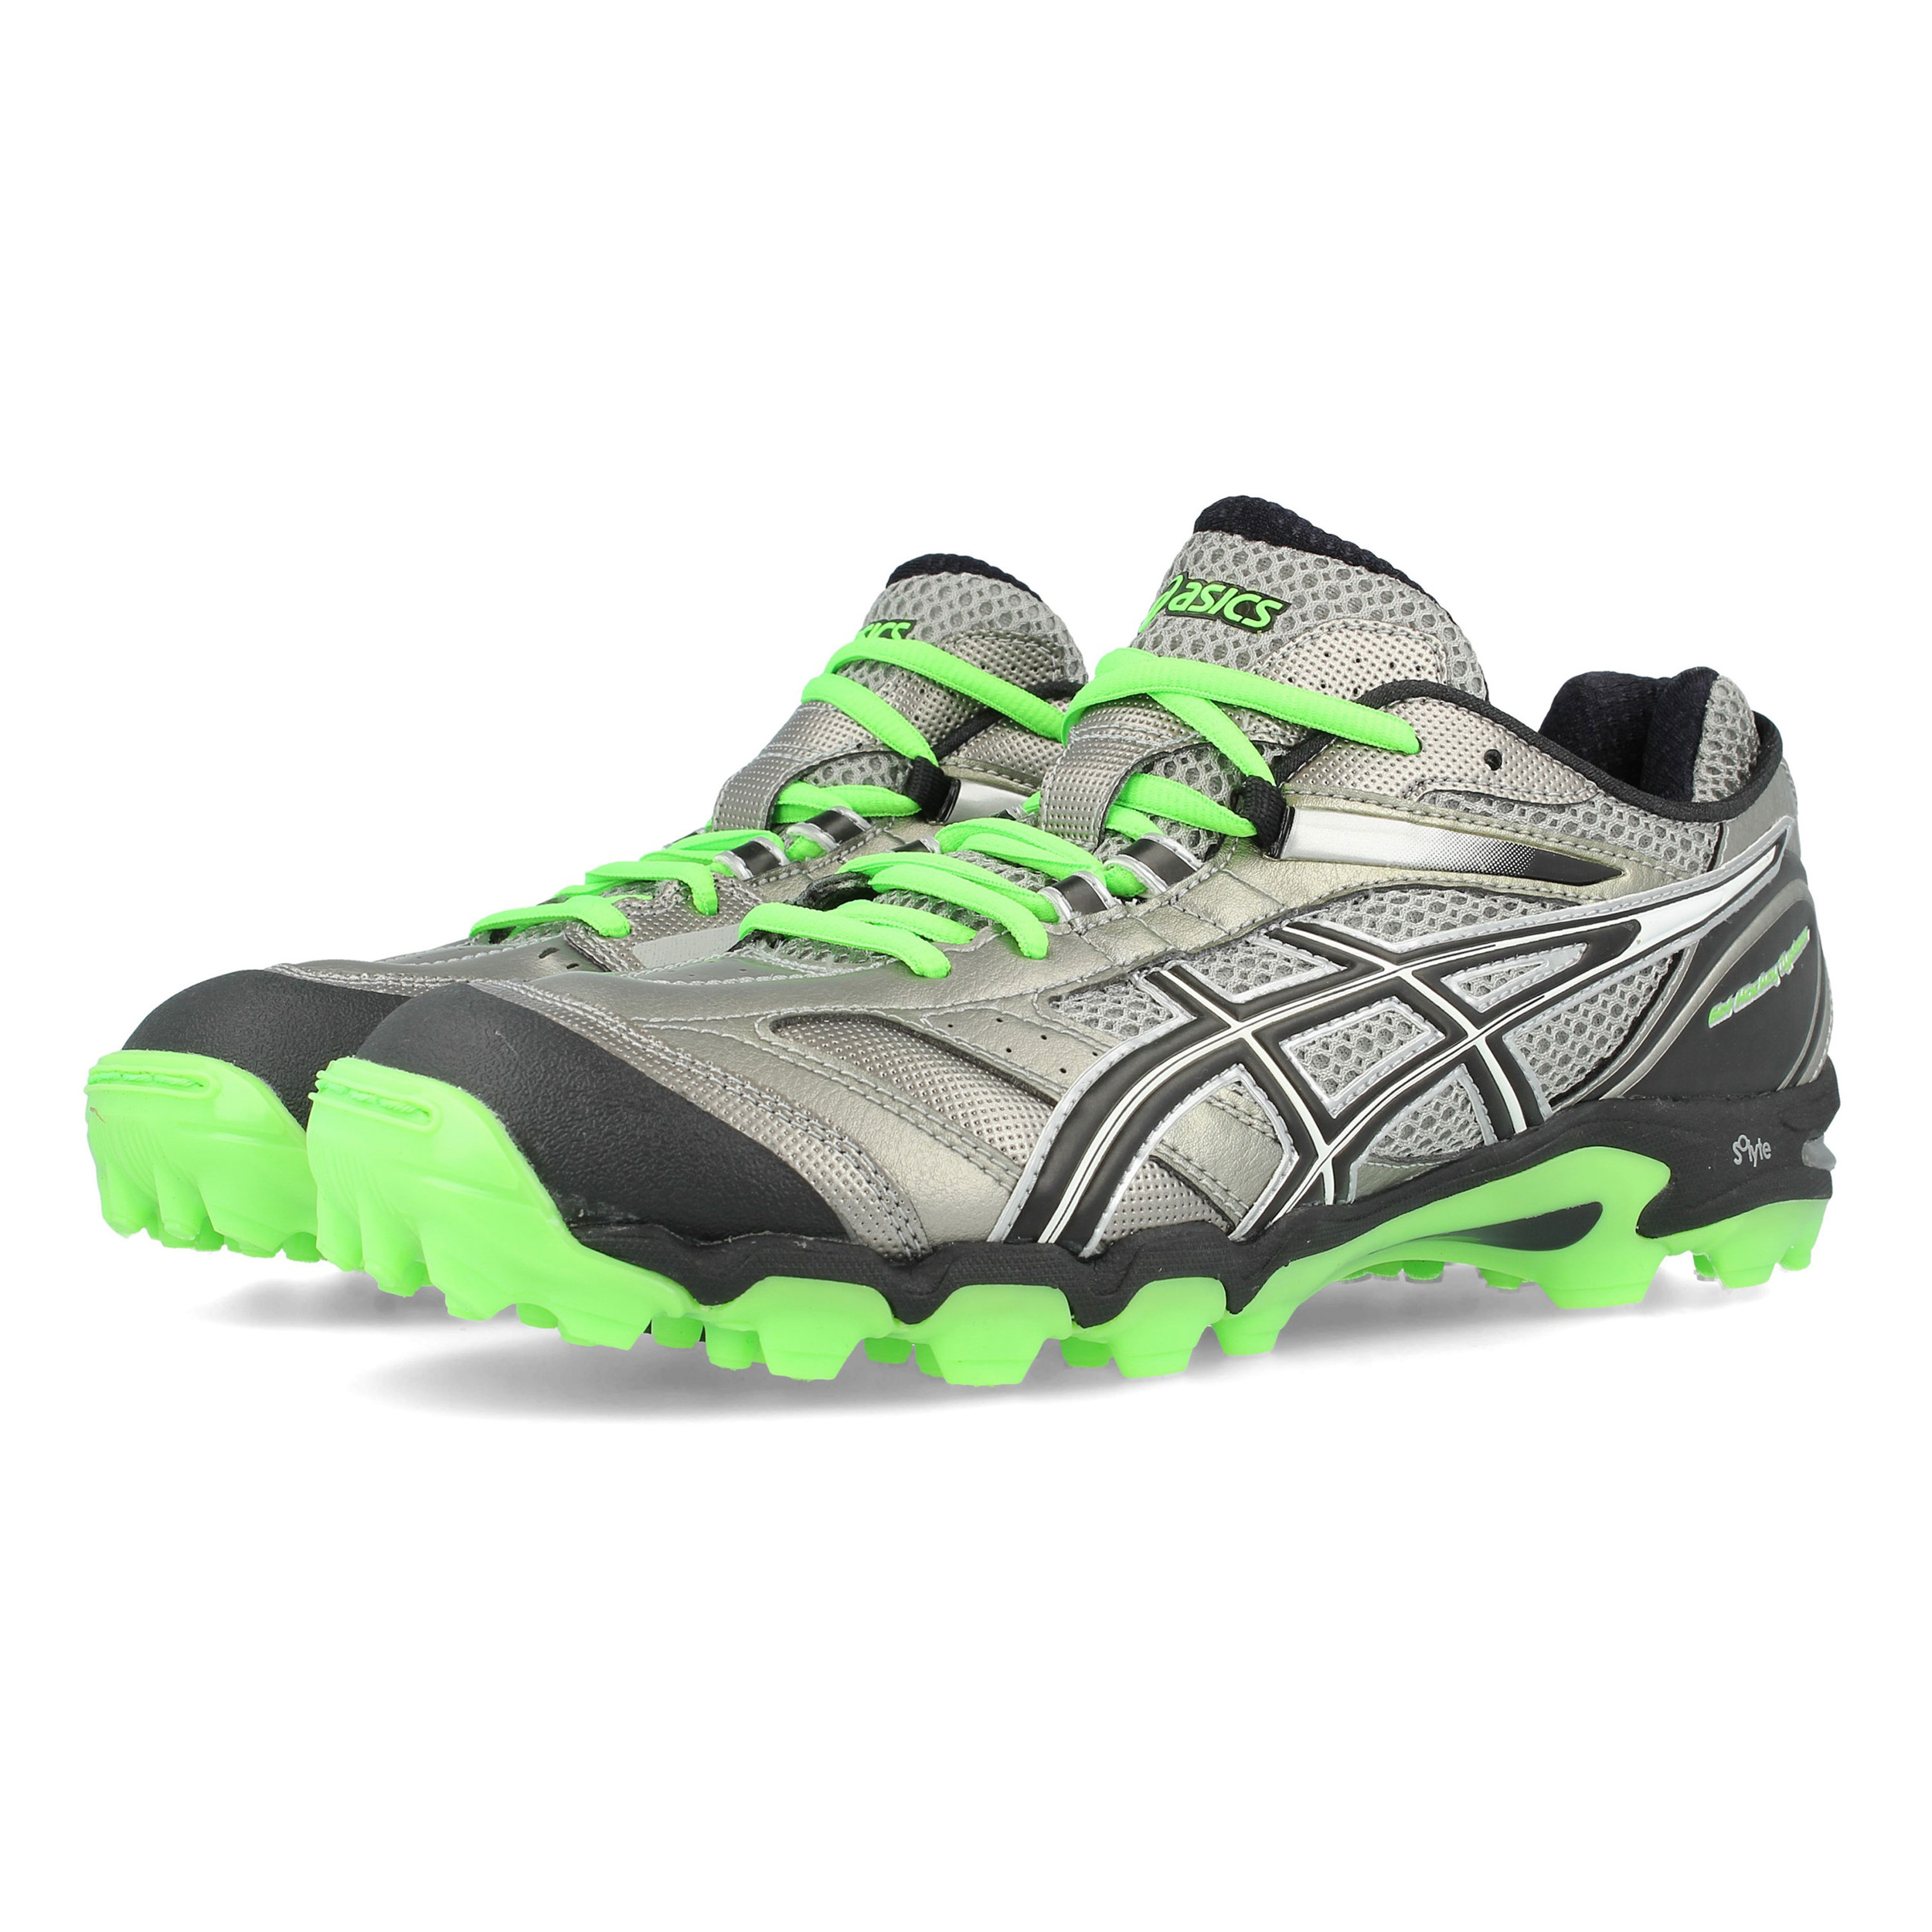 huge selection of 62944 9c3f1 Details about Asics Mens Gel-Hockey Typhoon Hockey Shoes Pitch Field Silver  Sports Trainers